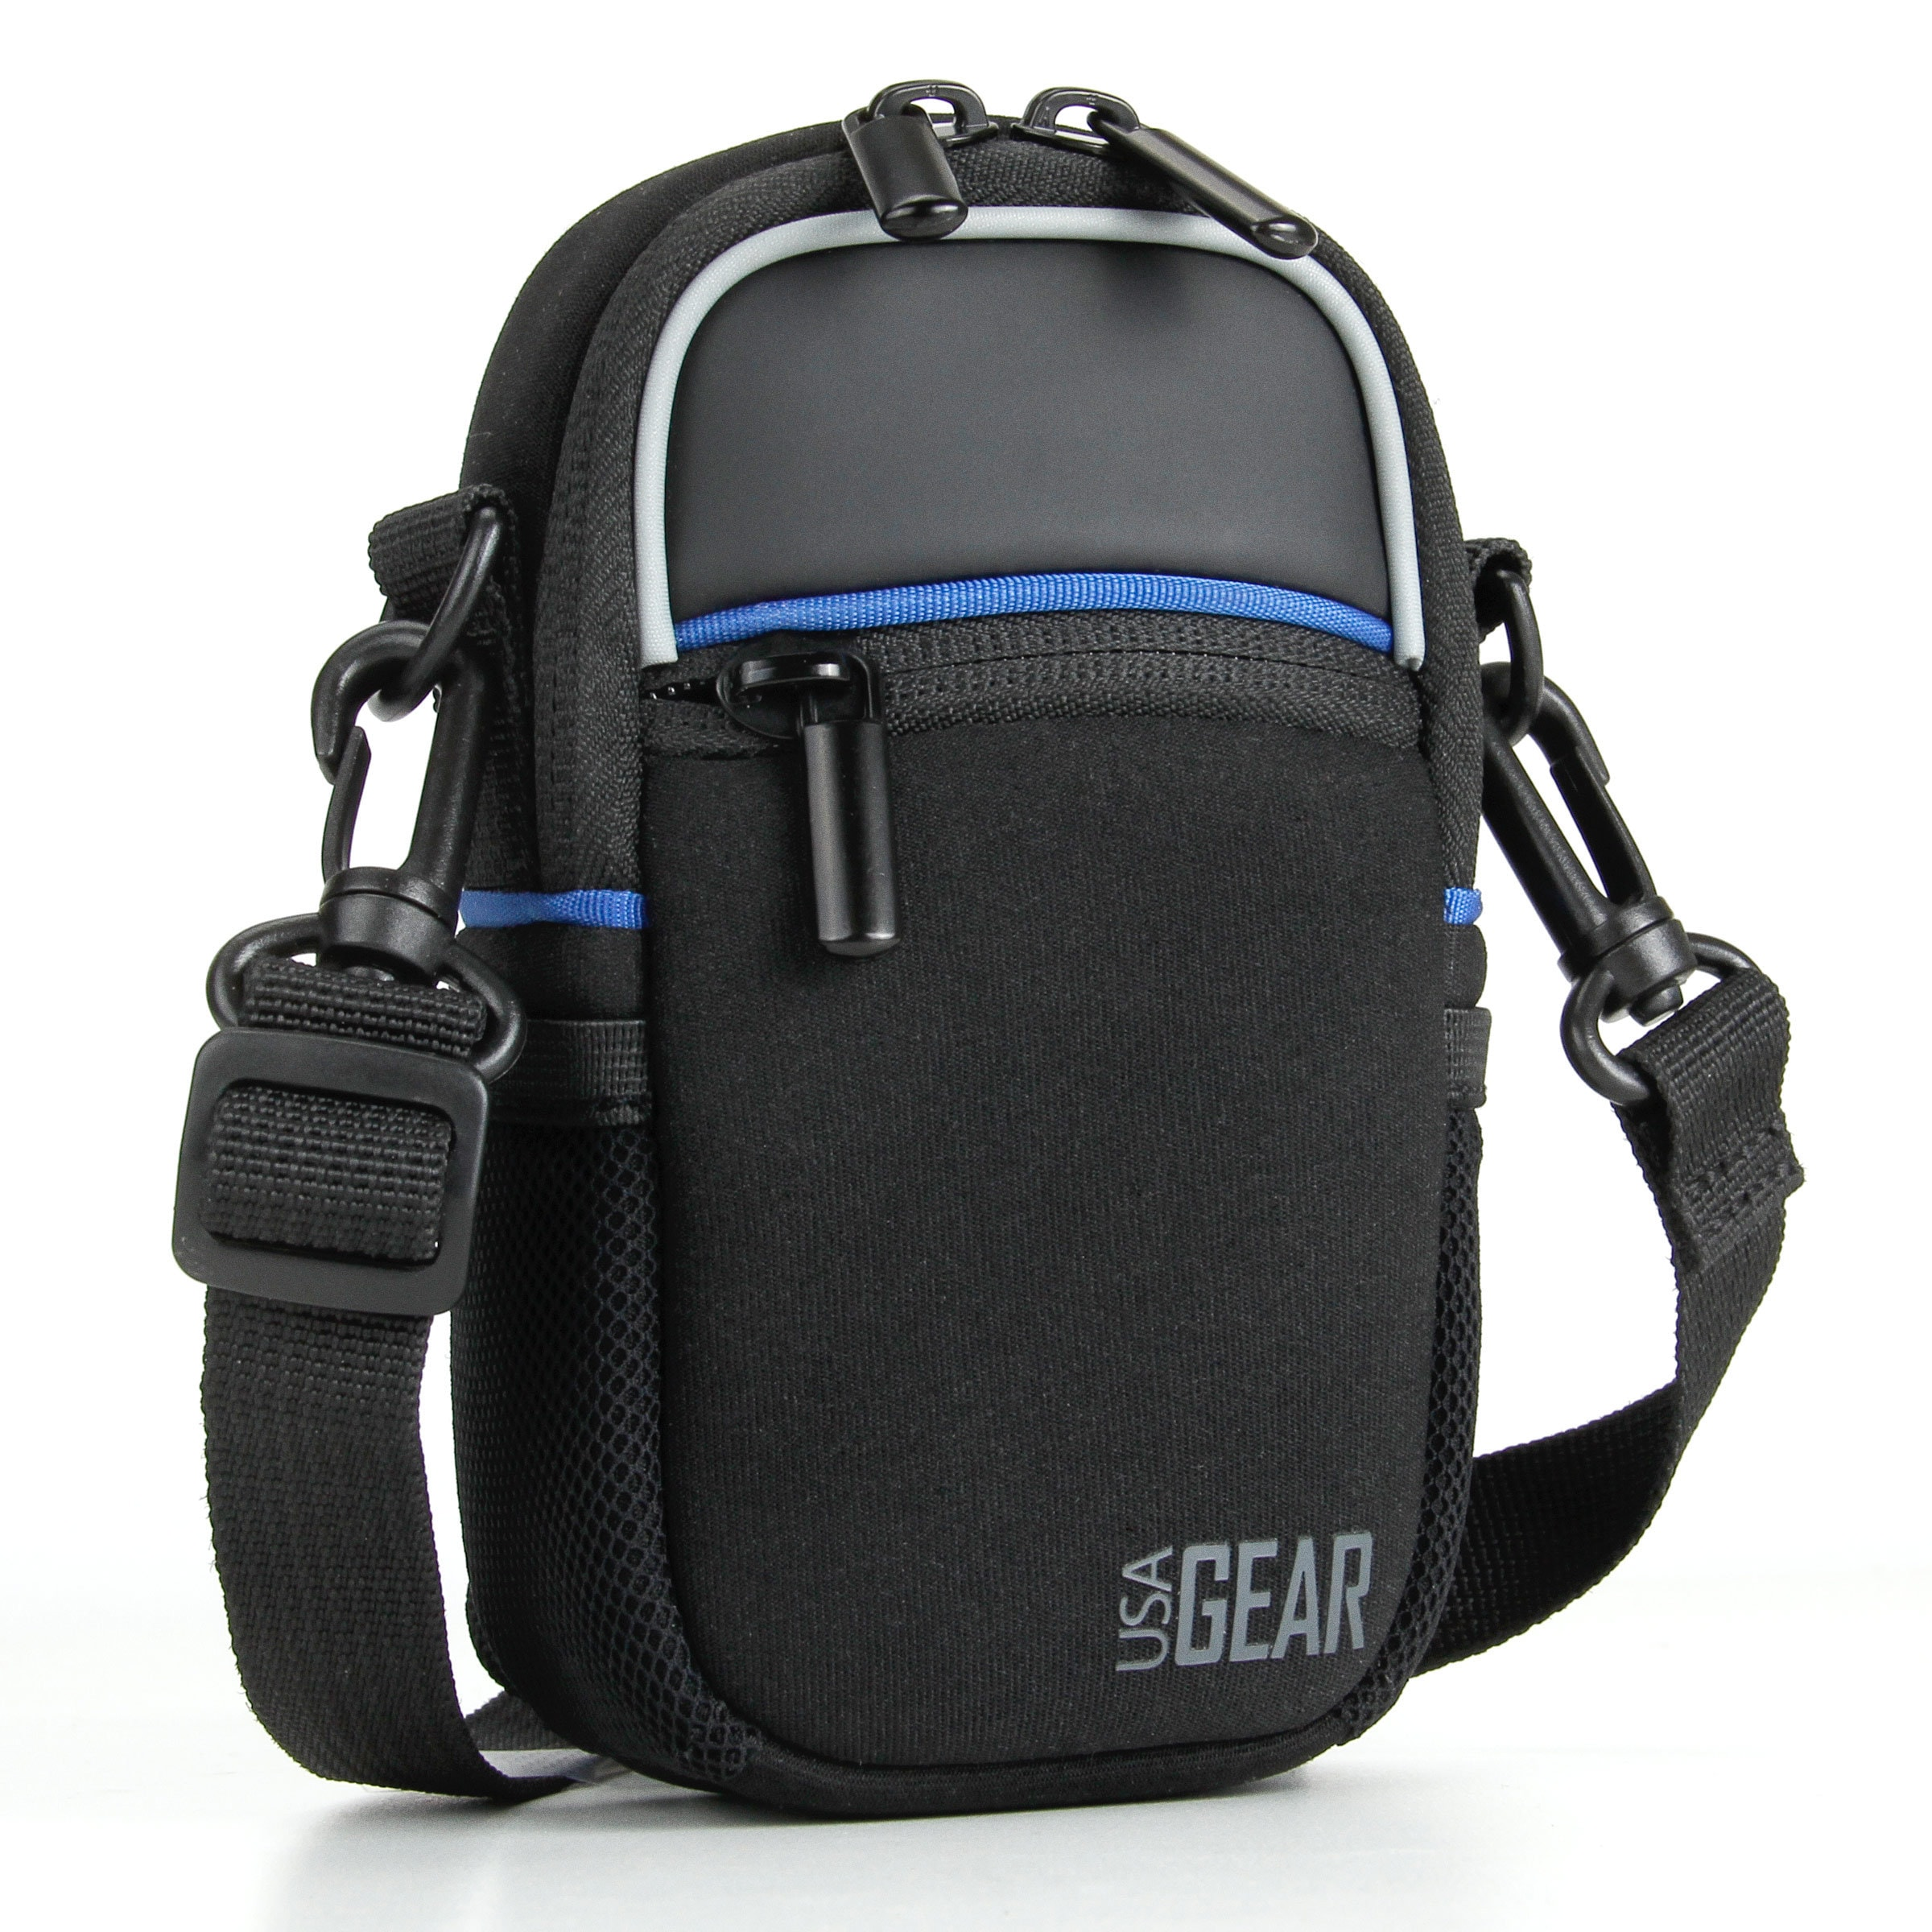 Compact Camera Bag by USA Gear with Rain Cover and Should...